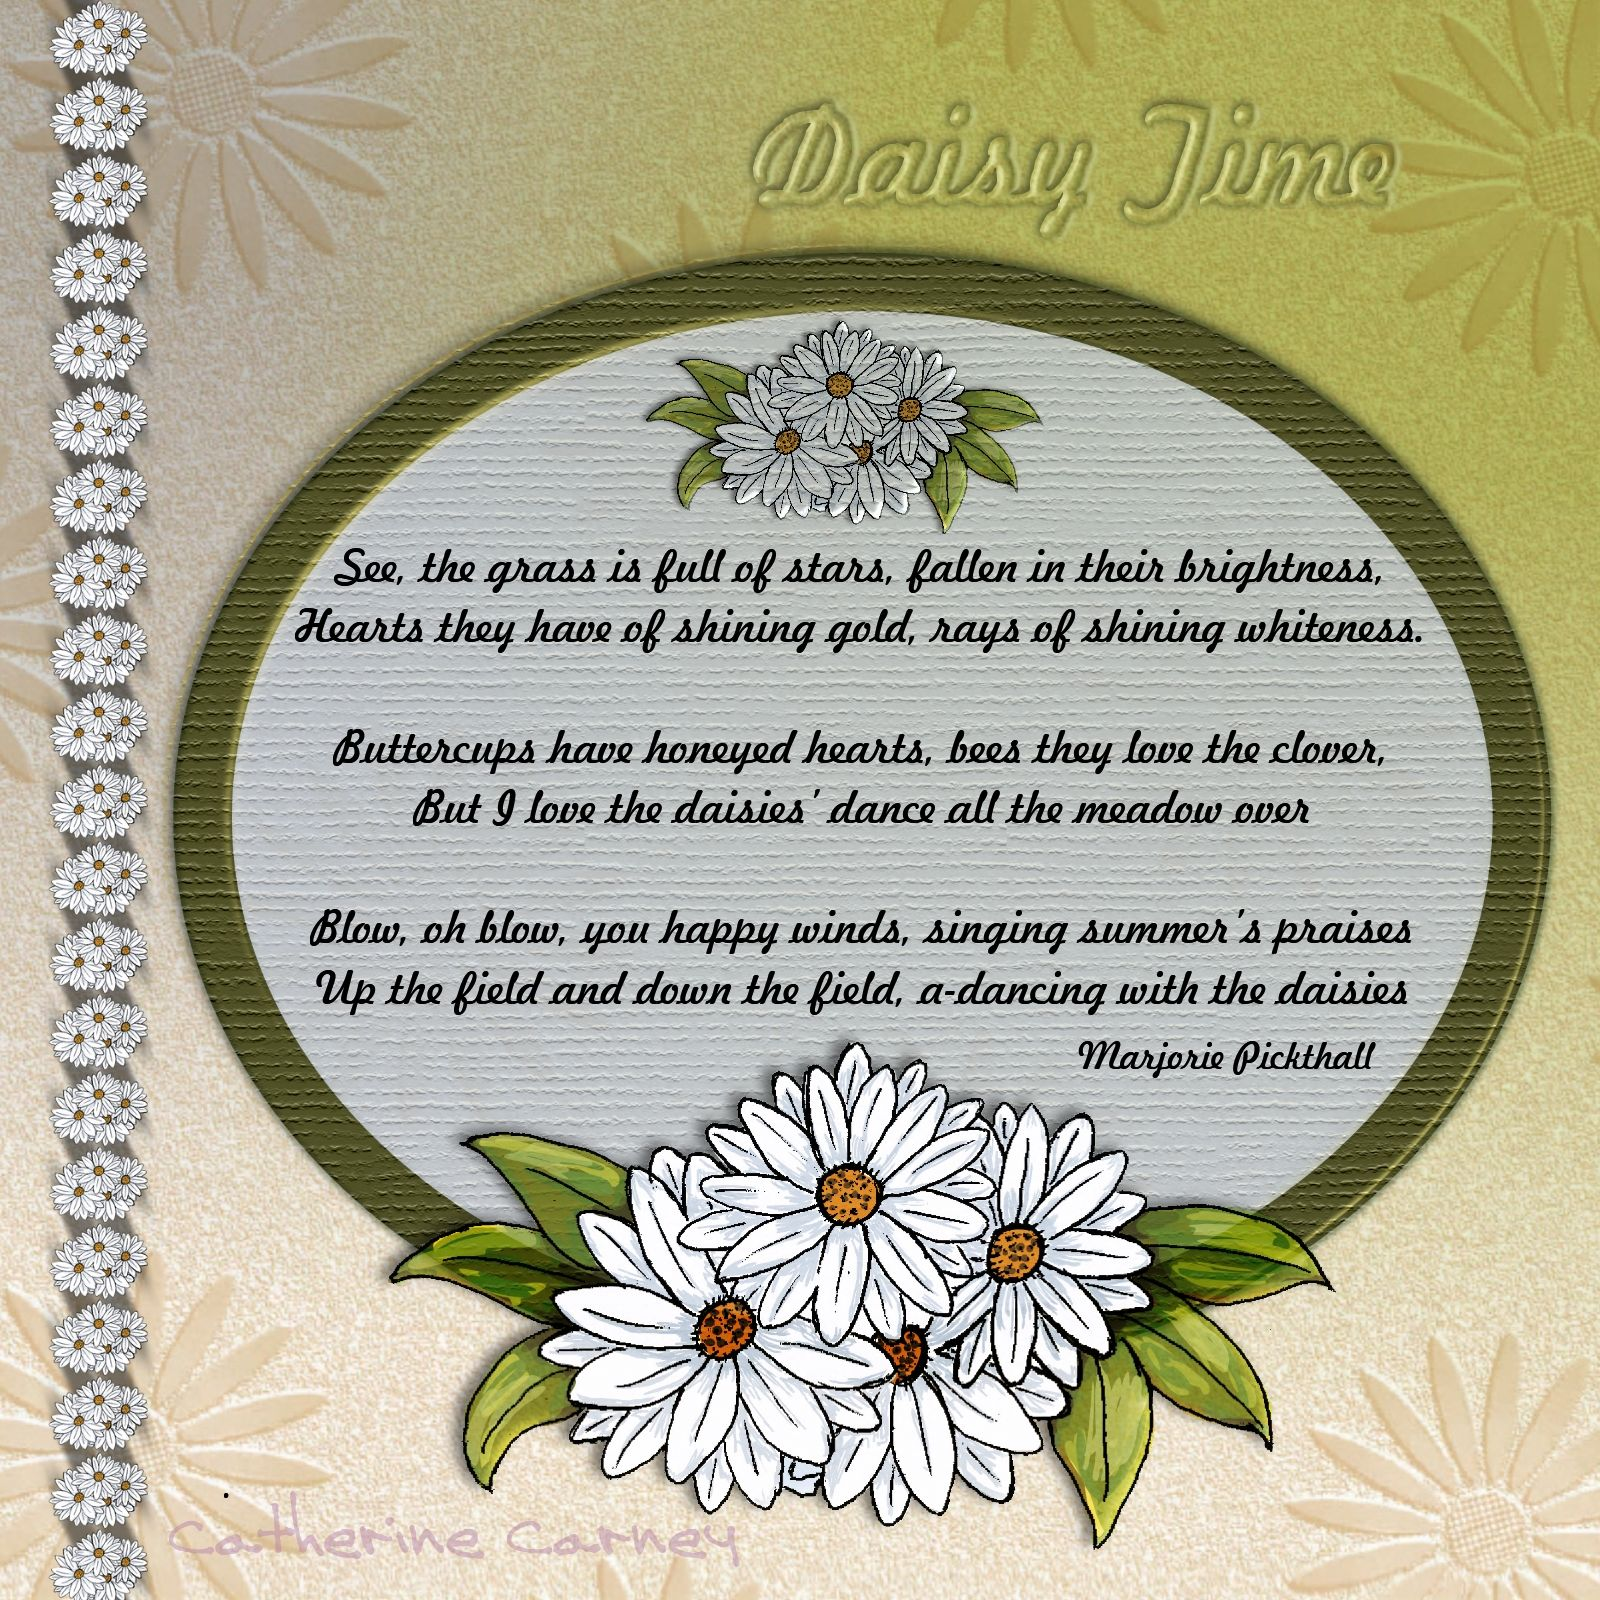 Poem about a daisy yahoo image search results poetry pinterest poem about a daisy yahoo image search results daisy field yahoo images daisies izmirmasajfo